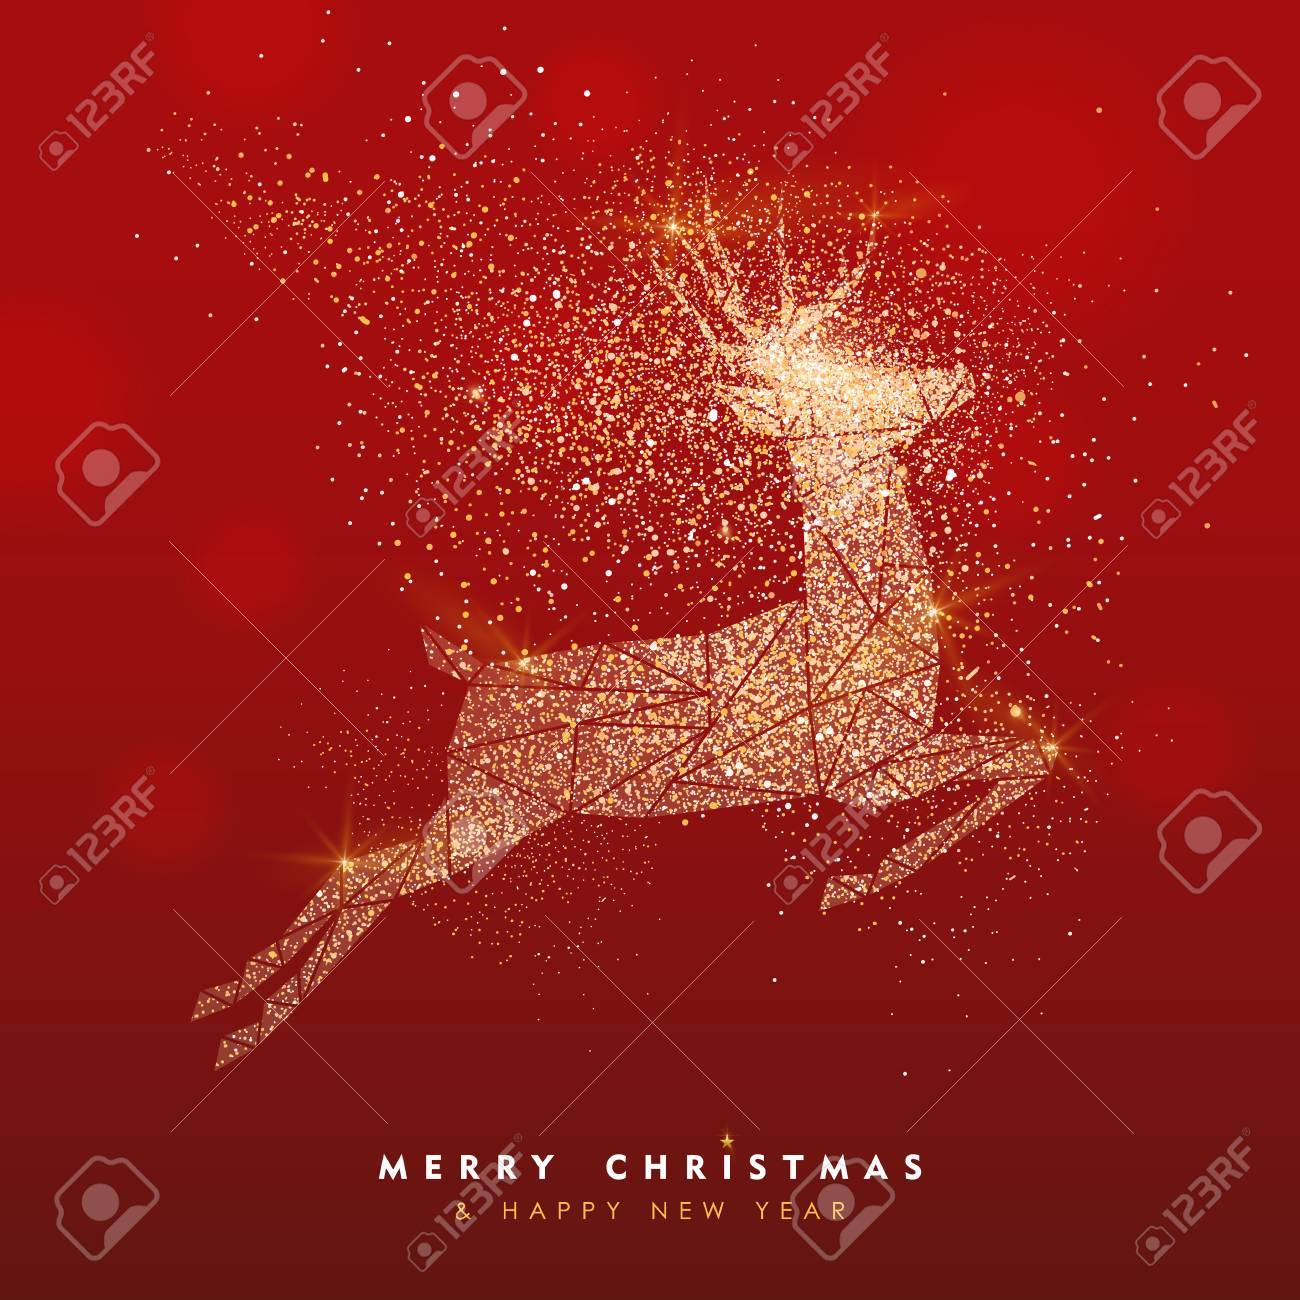 Merry Christmas and Happy New Year luxury greeting card illustration, xmas jumping reindeer in gold glitter texture on festive red bokhe lights background with holiday text quote. - 113543145